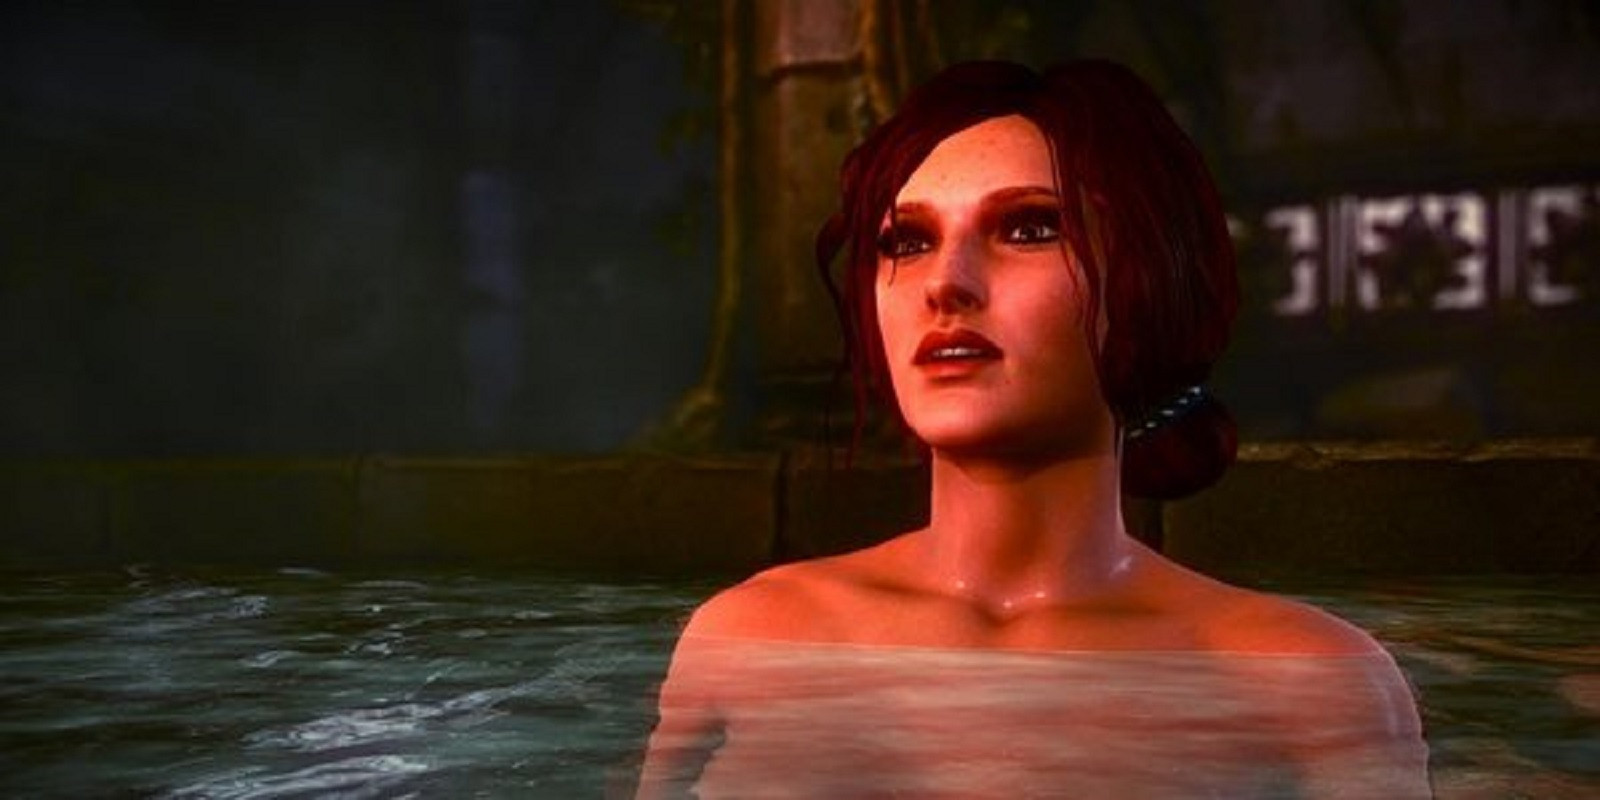 Nude video game photos 64